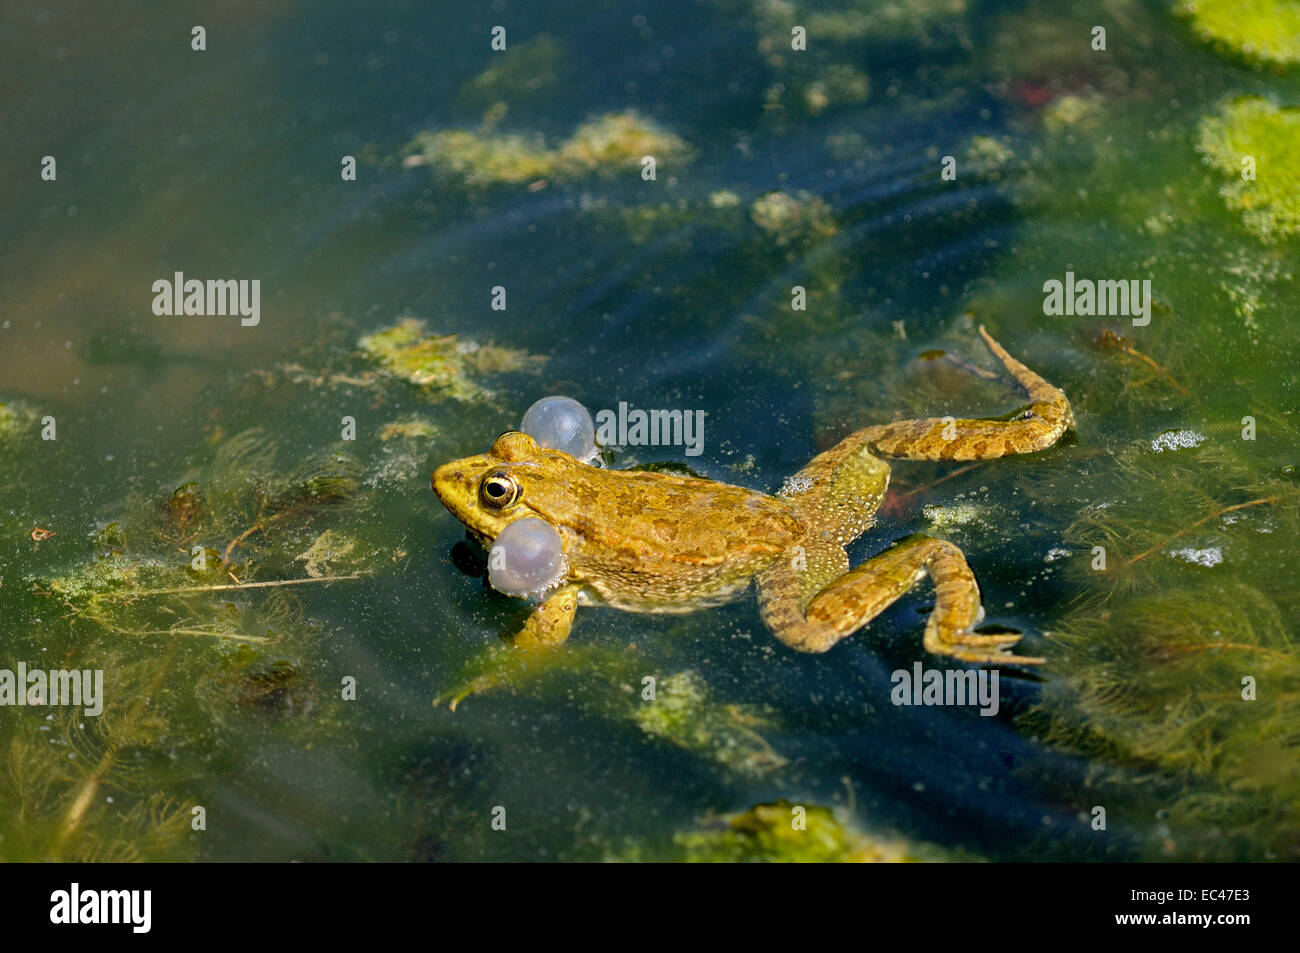 Male Edible frog with distended vocal sacs - Stock Image